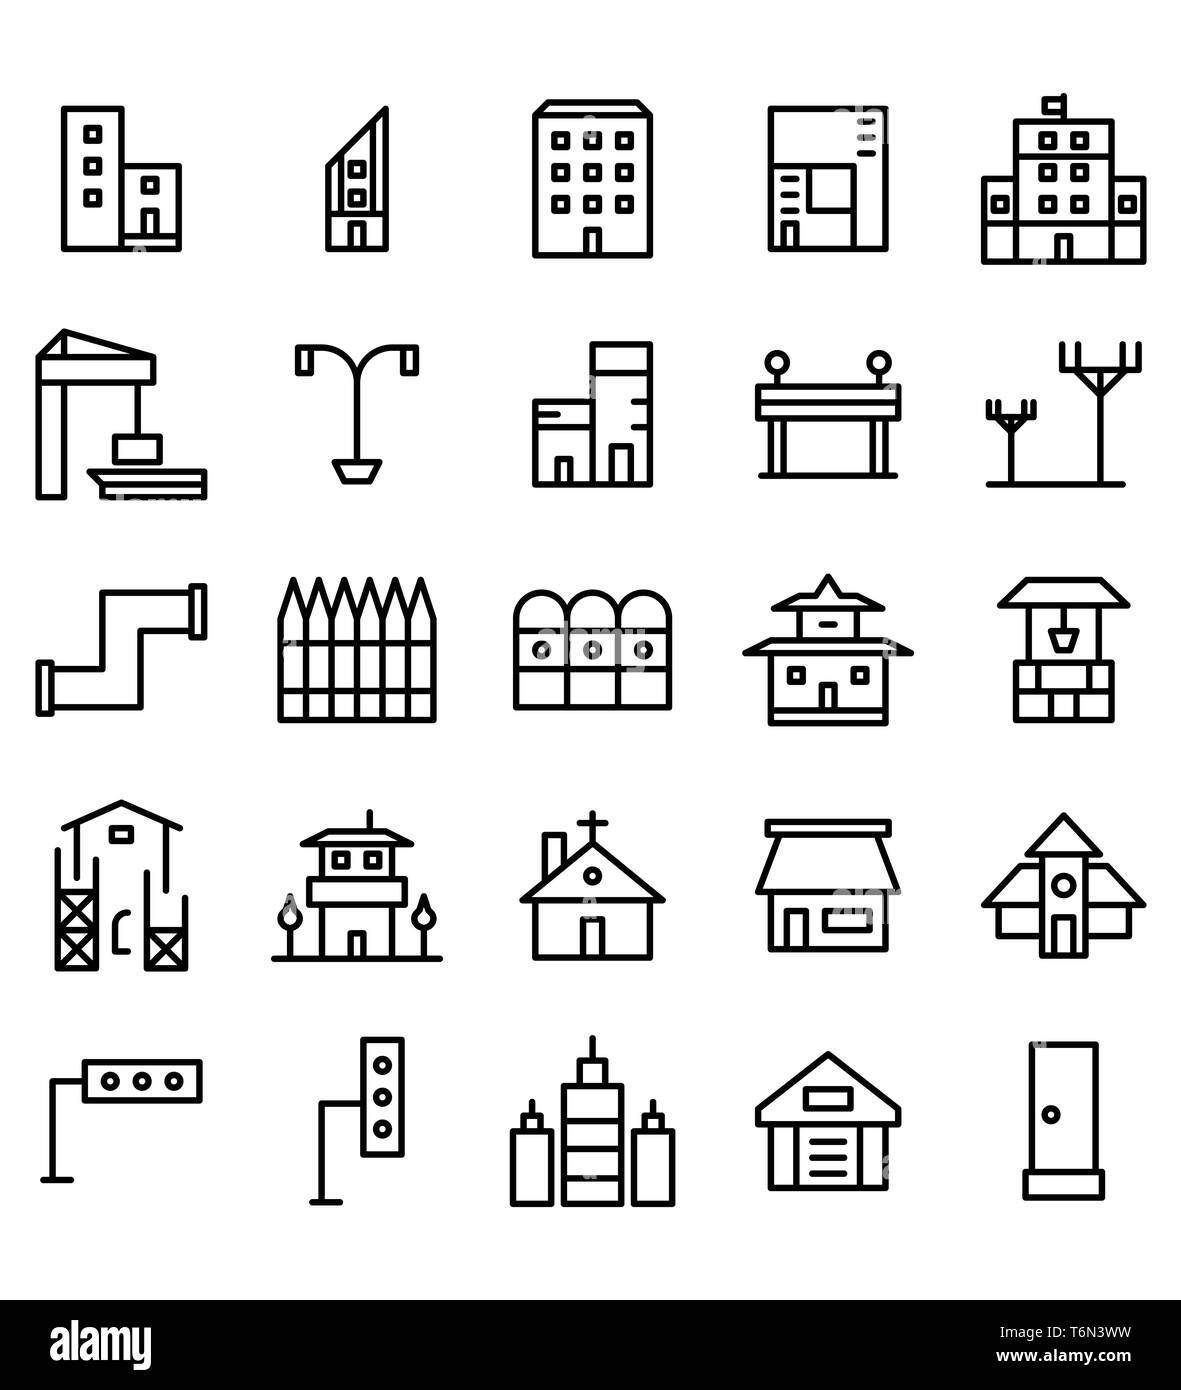 Set of Building and real estate city Black Line vector illustration icon or symbol. Editable stroke and color - Stock Image